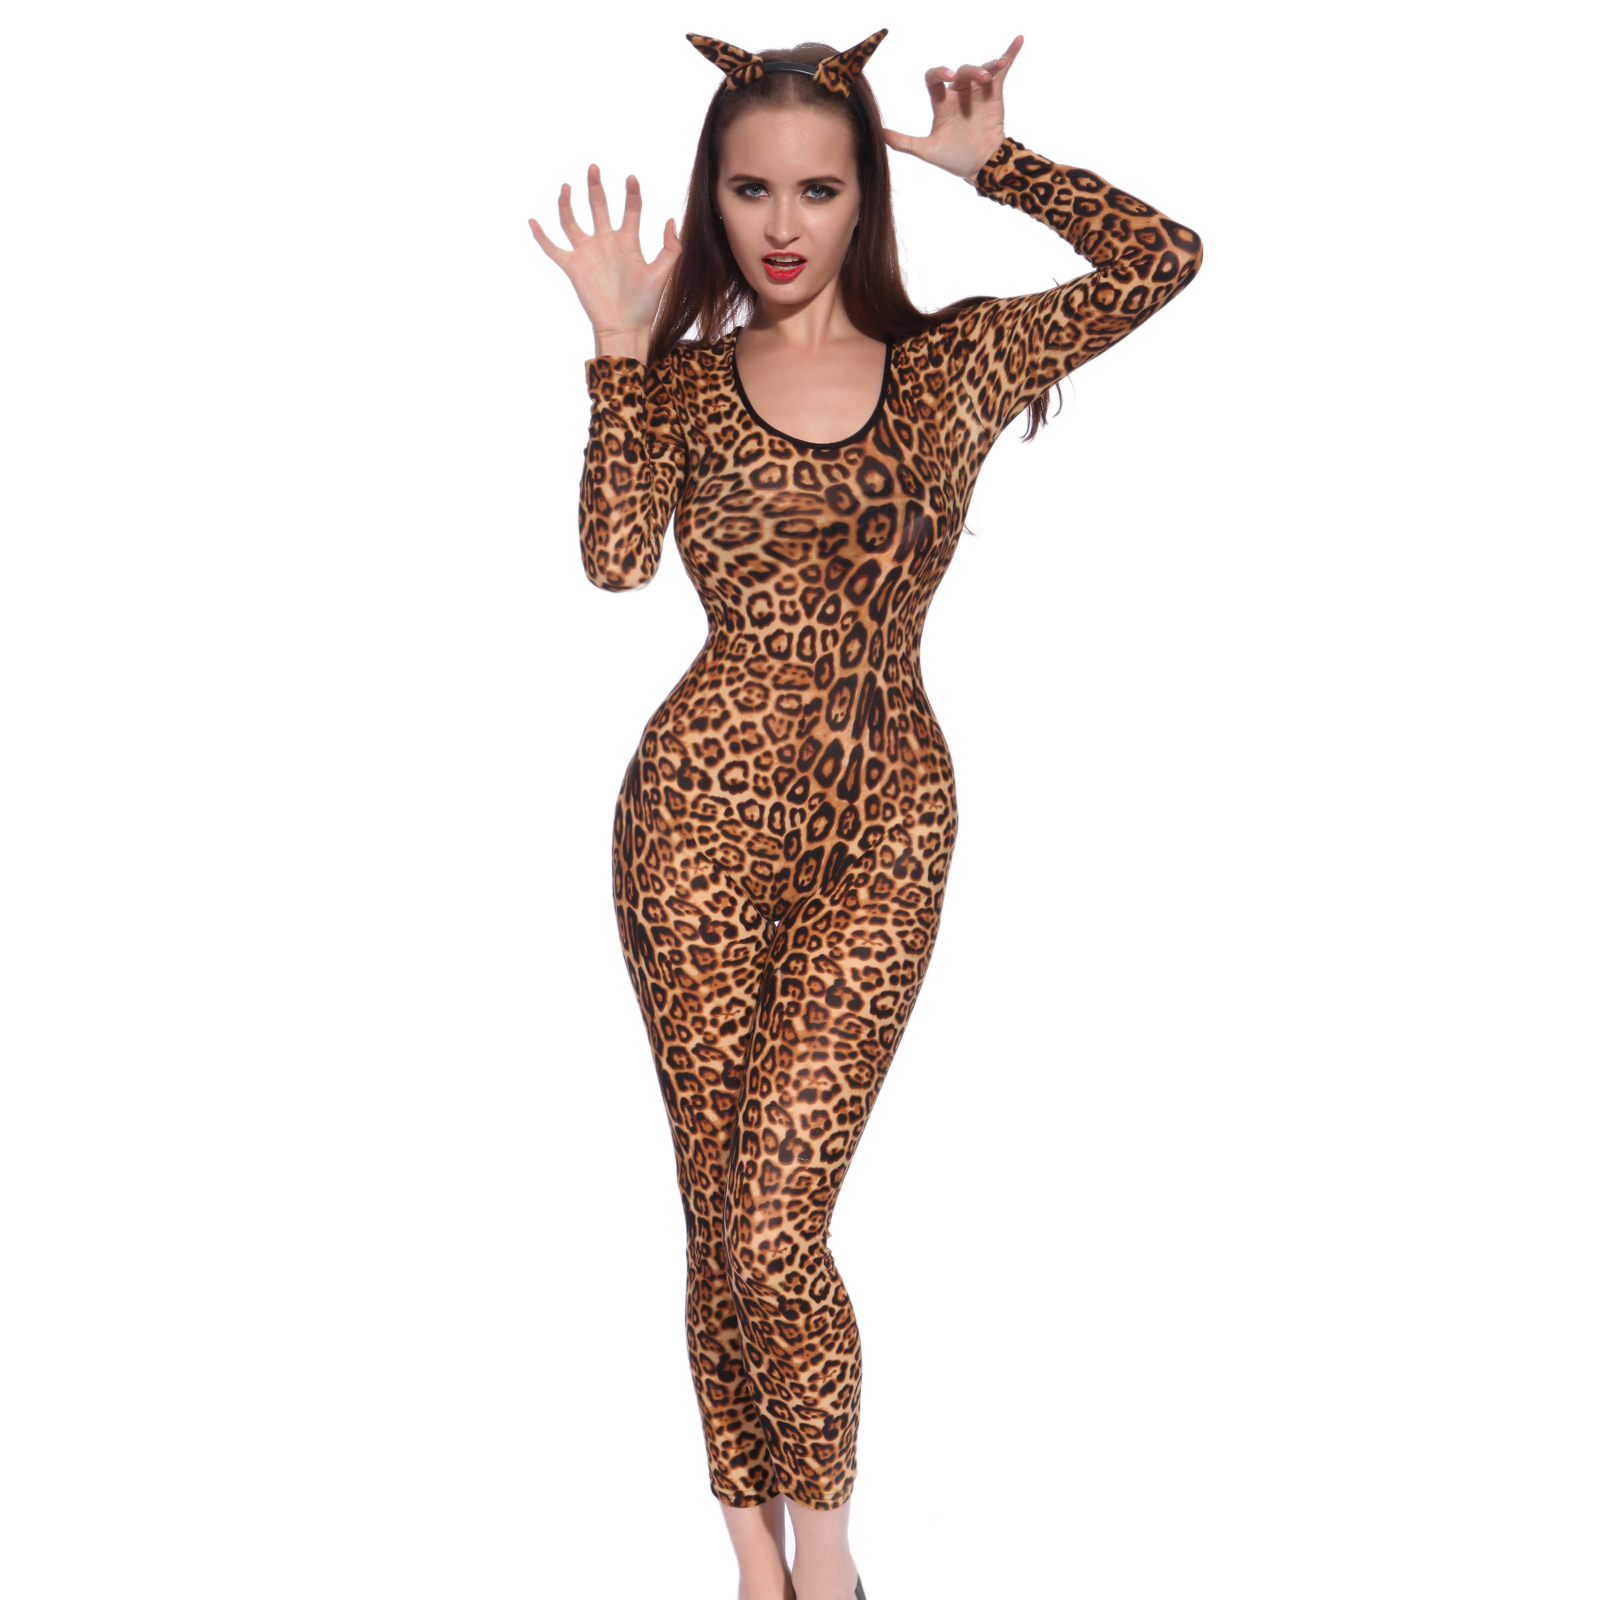 Leopard print catsuit, tail and leopard ears headband. Hollywood wig sold separately.